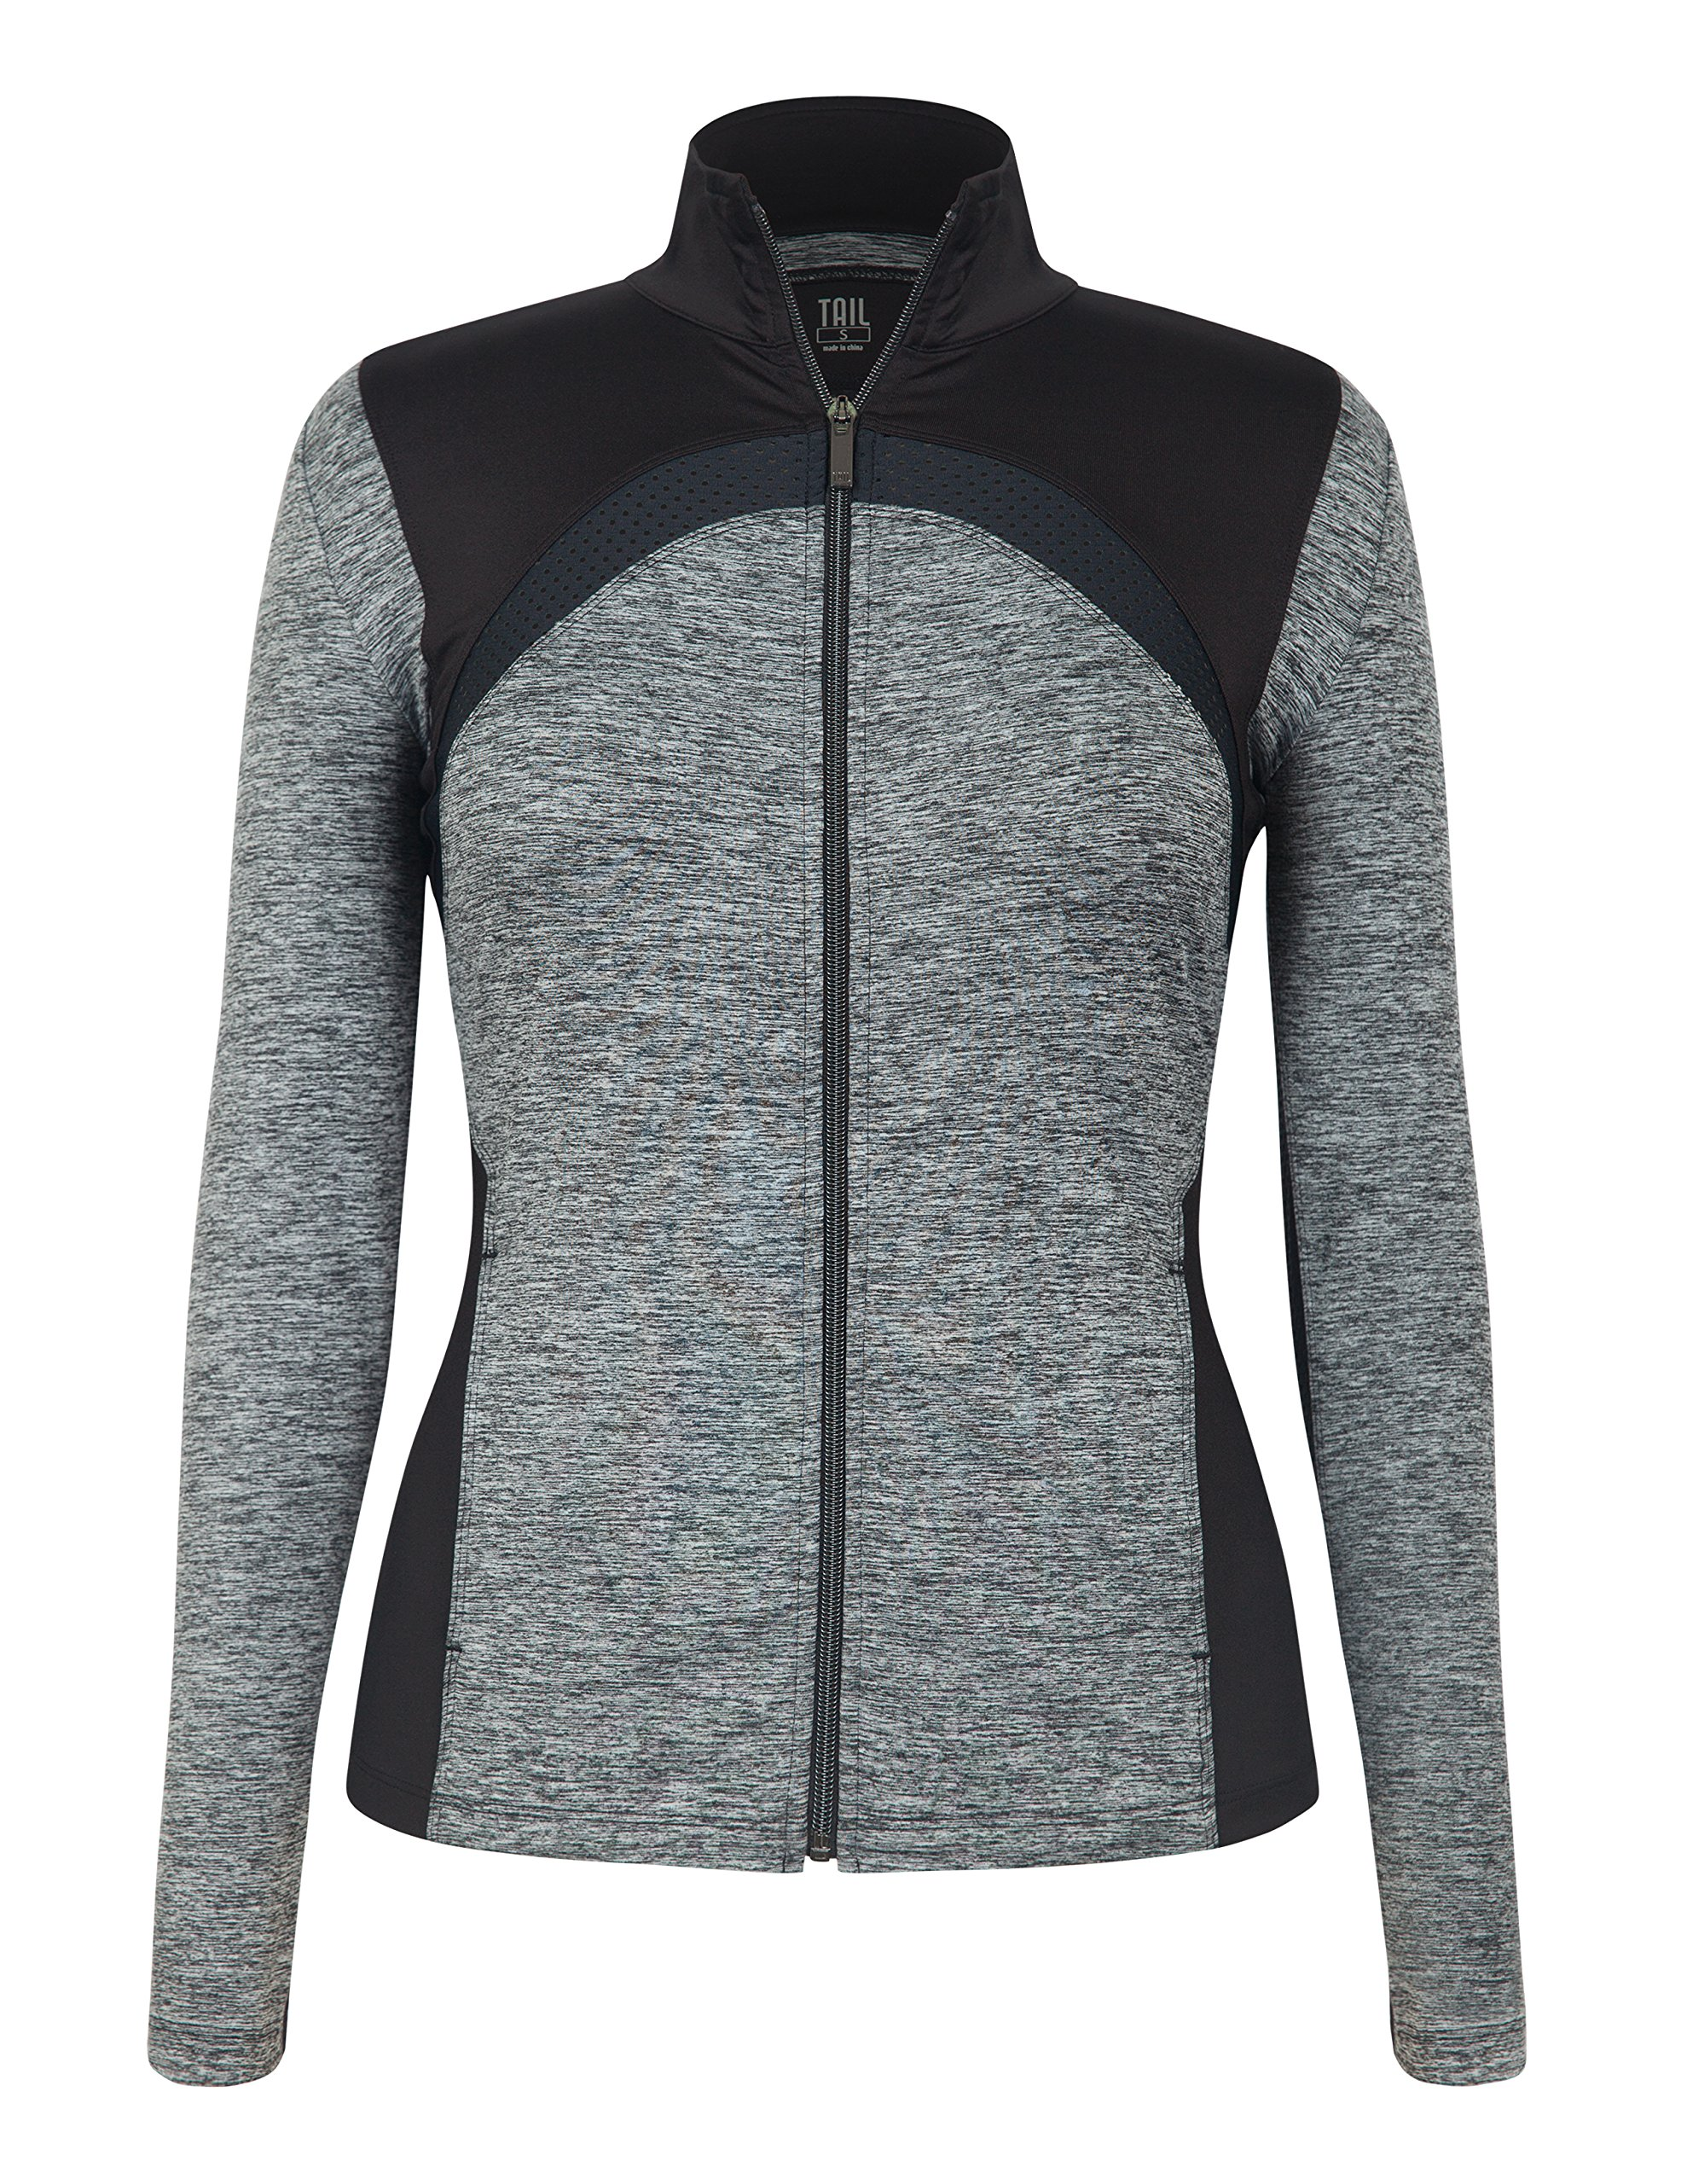 Tail Activewear Women's Dover Jacket Light Large Grey